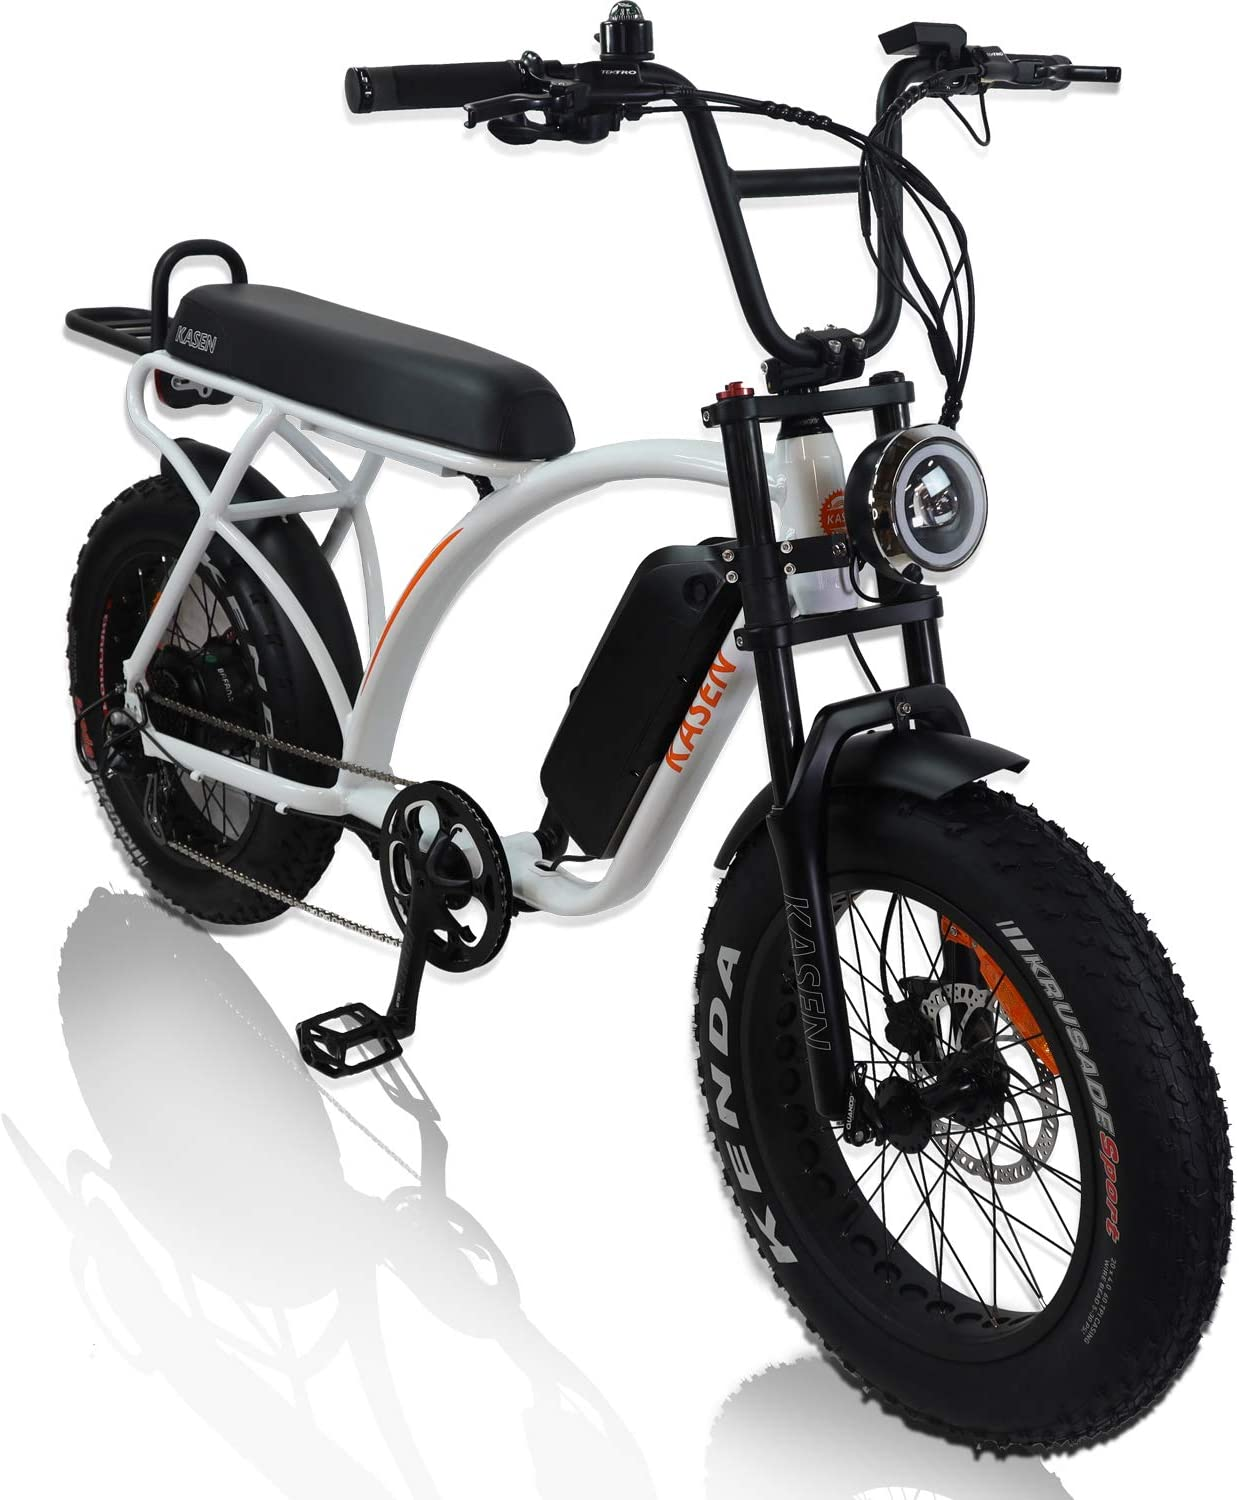 kasen Electric Bike Kabbit 1000w 20 Fat Tire Crusier Off Road 48V 14ah Samsung Lithium Battery